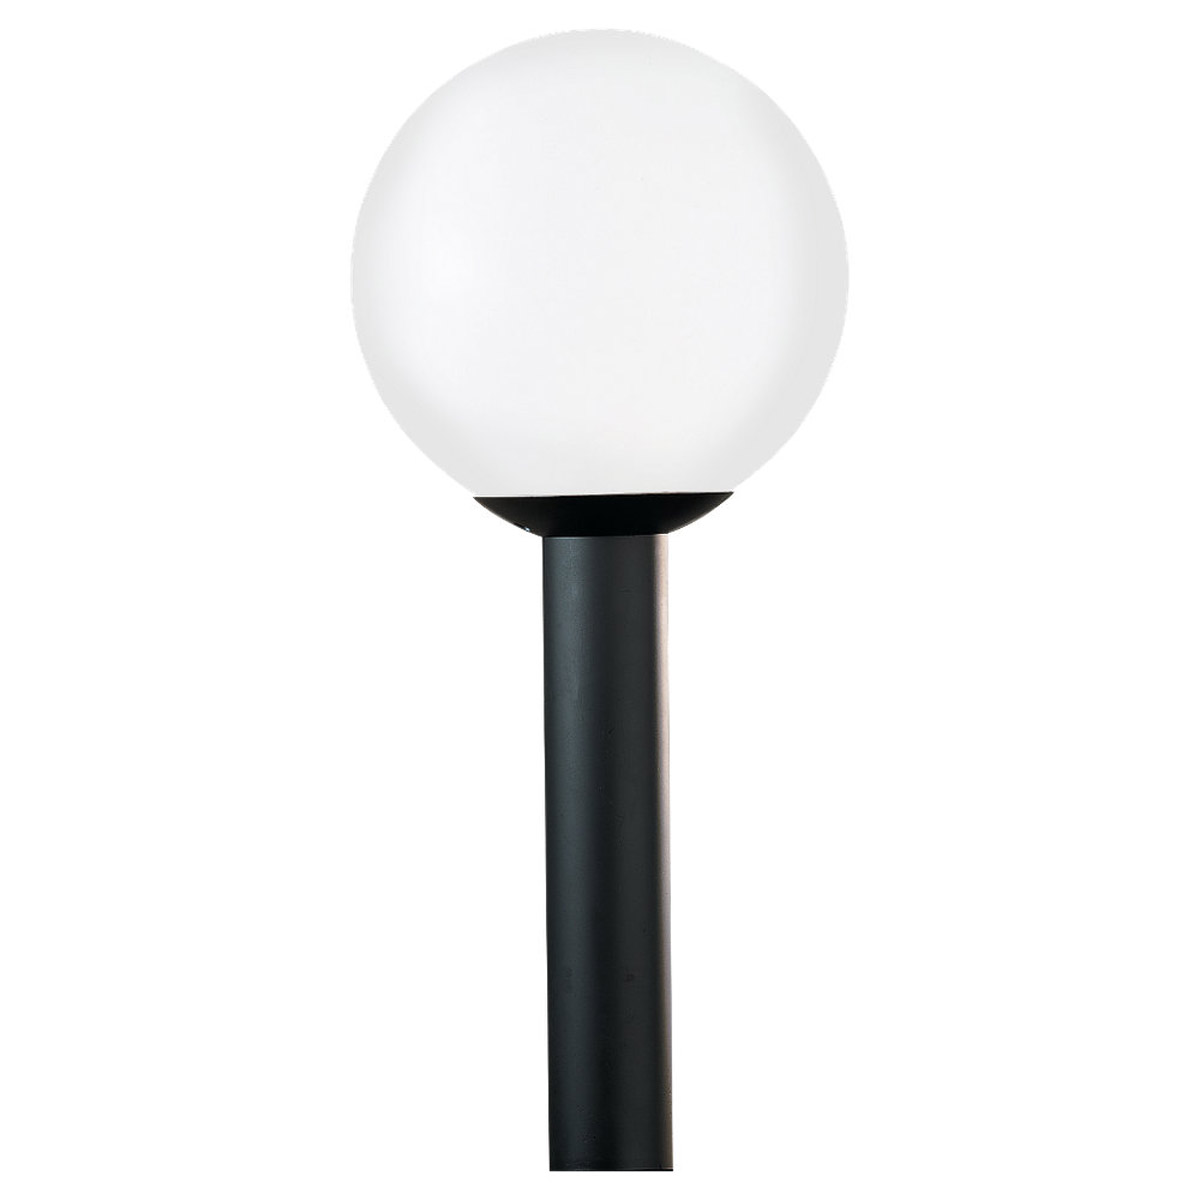 Sea Gull Lighting Outdoor Globe 1 Light Outdoor Post Lantern in White Plastic 8254-68